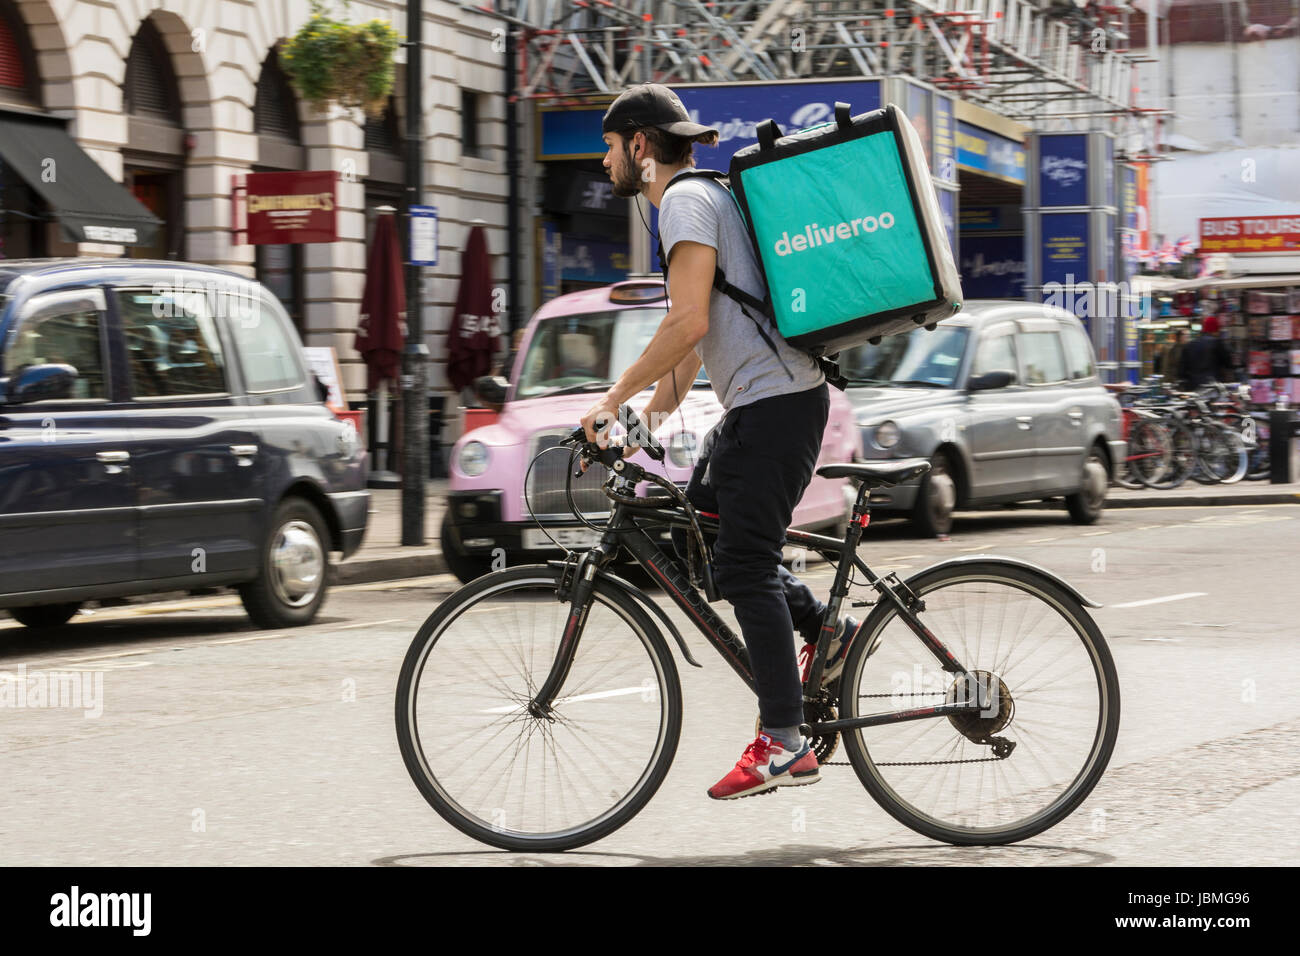 A Deliveroo cyclist on his bike in central London, UK - Stock Image